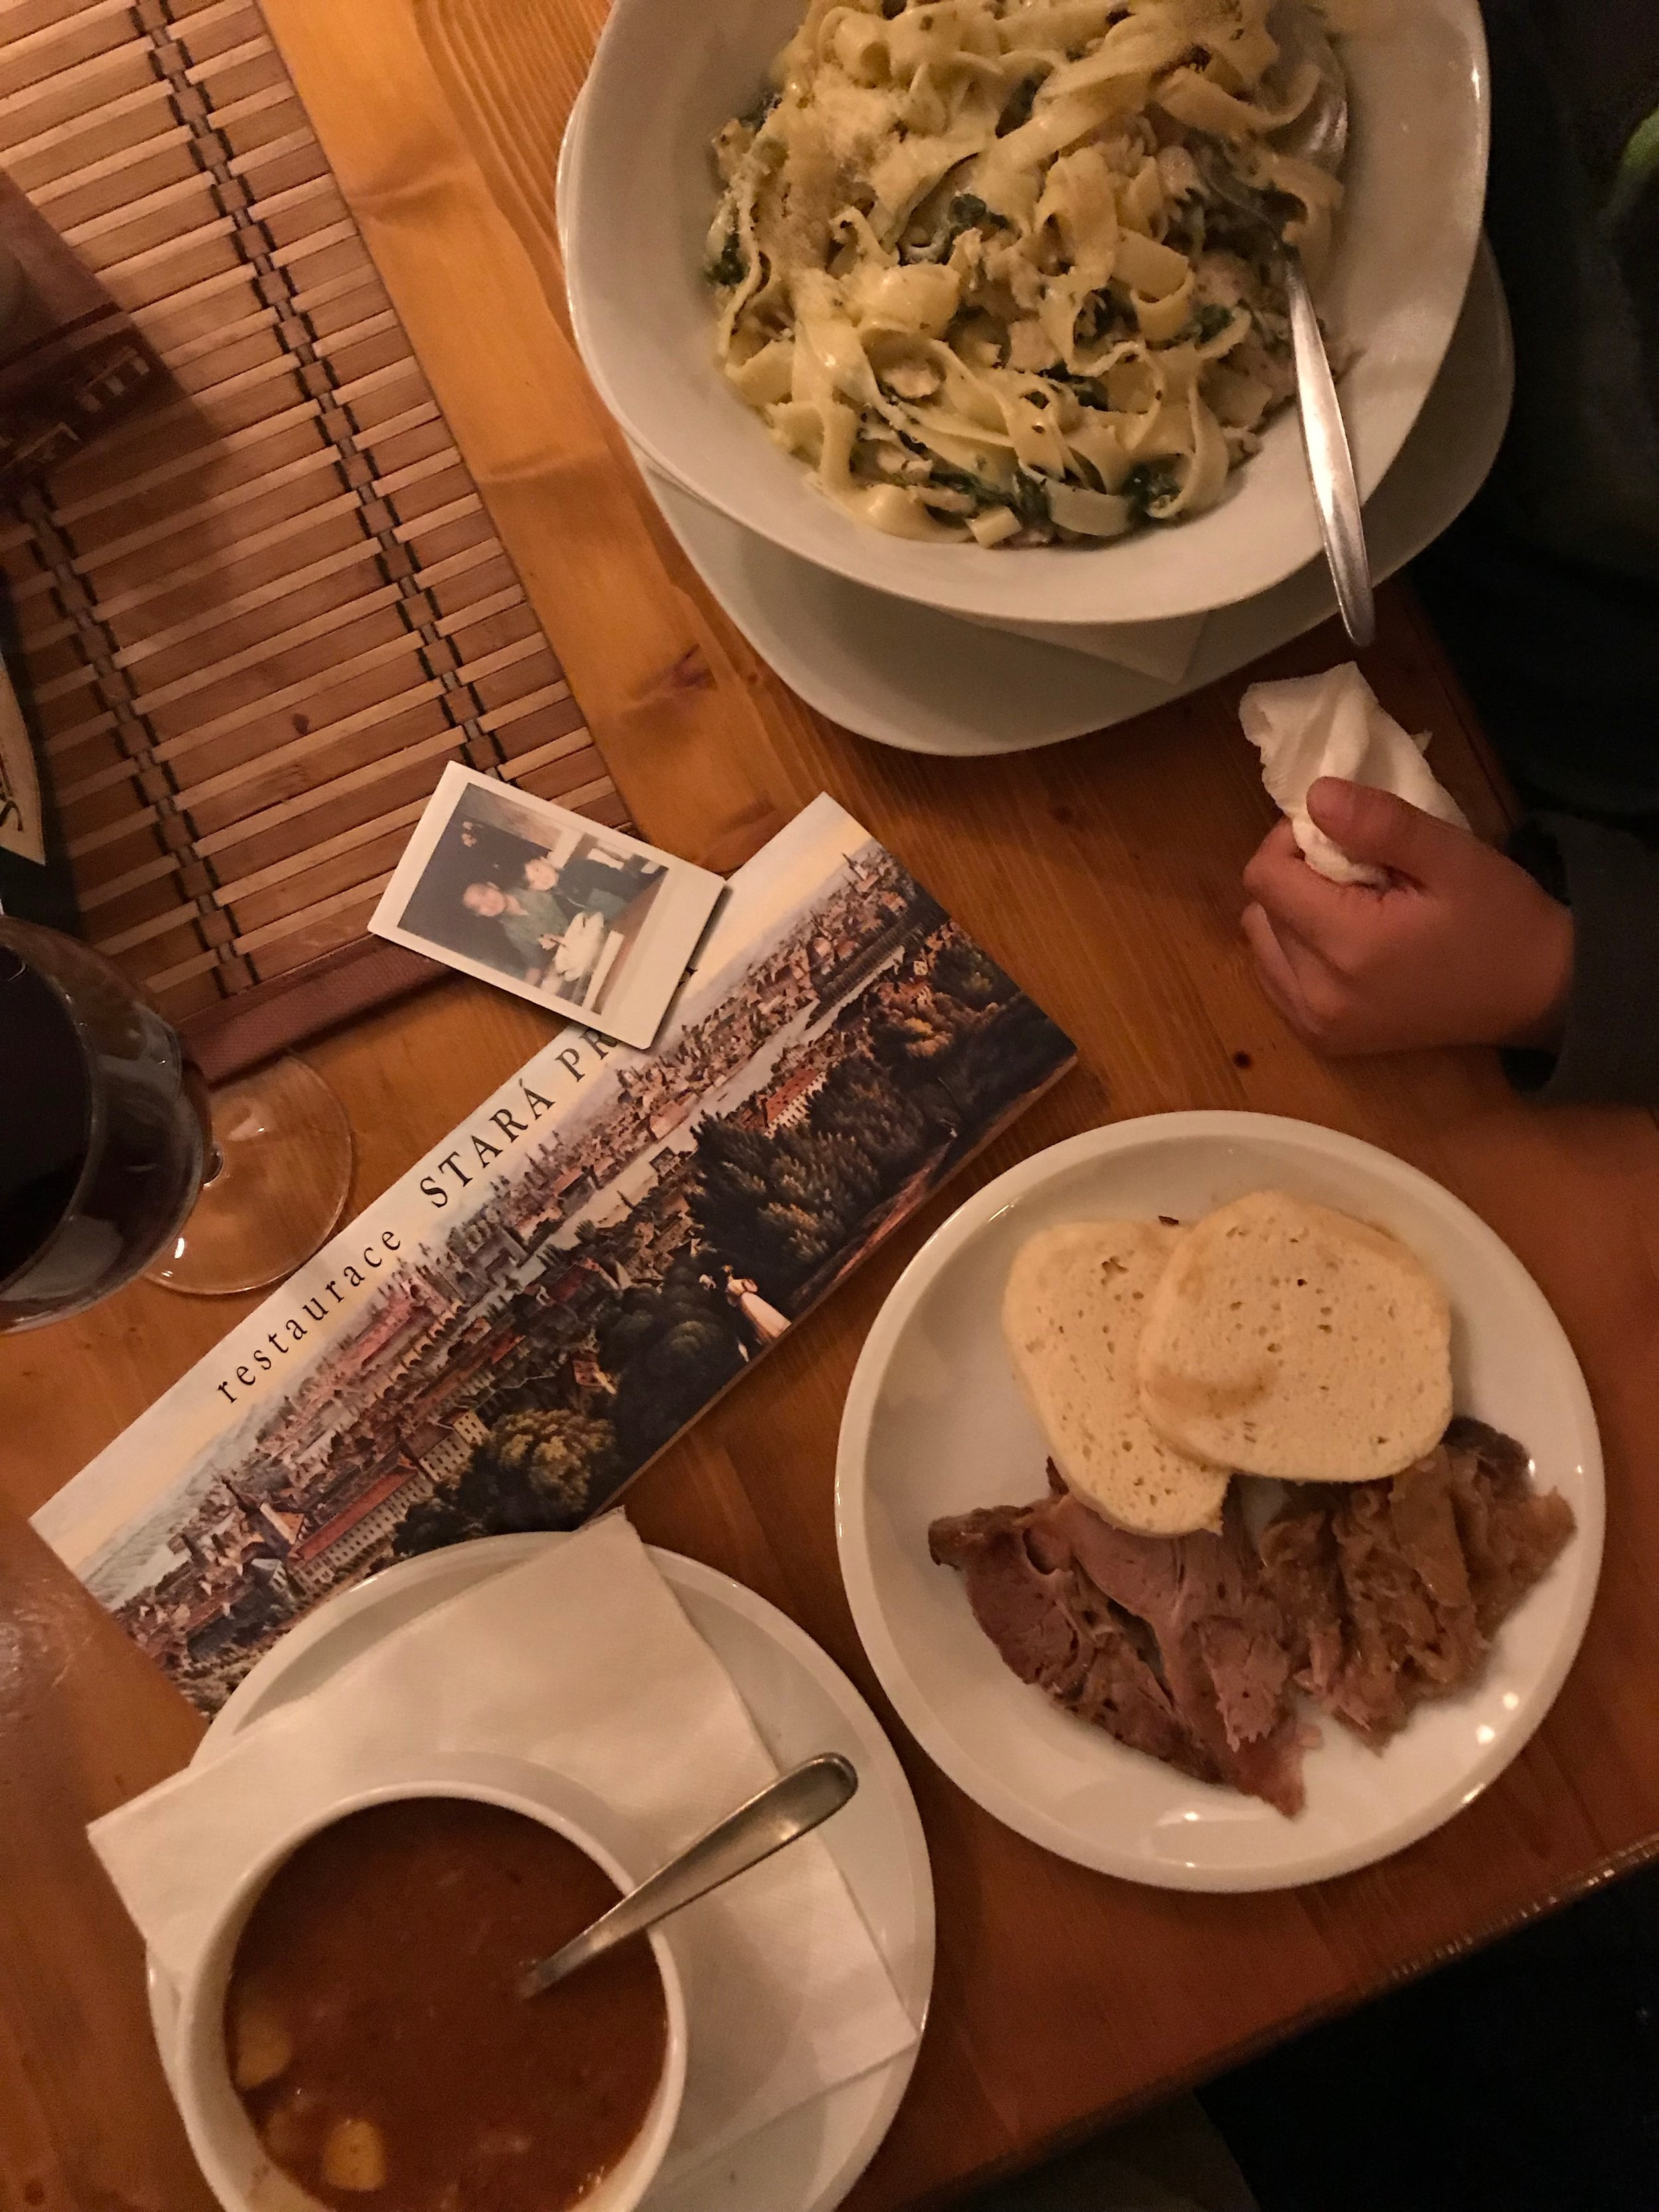 We went left off the bridge and got a little lost but found this place for a warm meal. I suggest you make a right off the bridge into the heart of Mala strana- many more shops and places to eat!